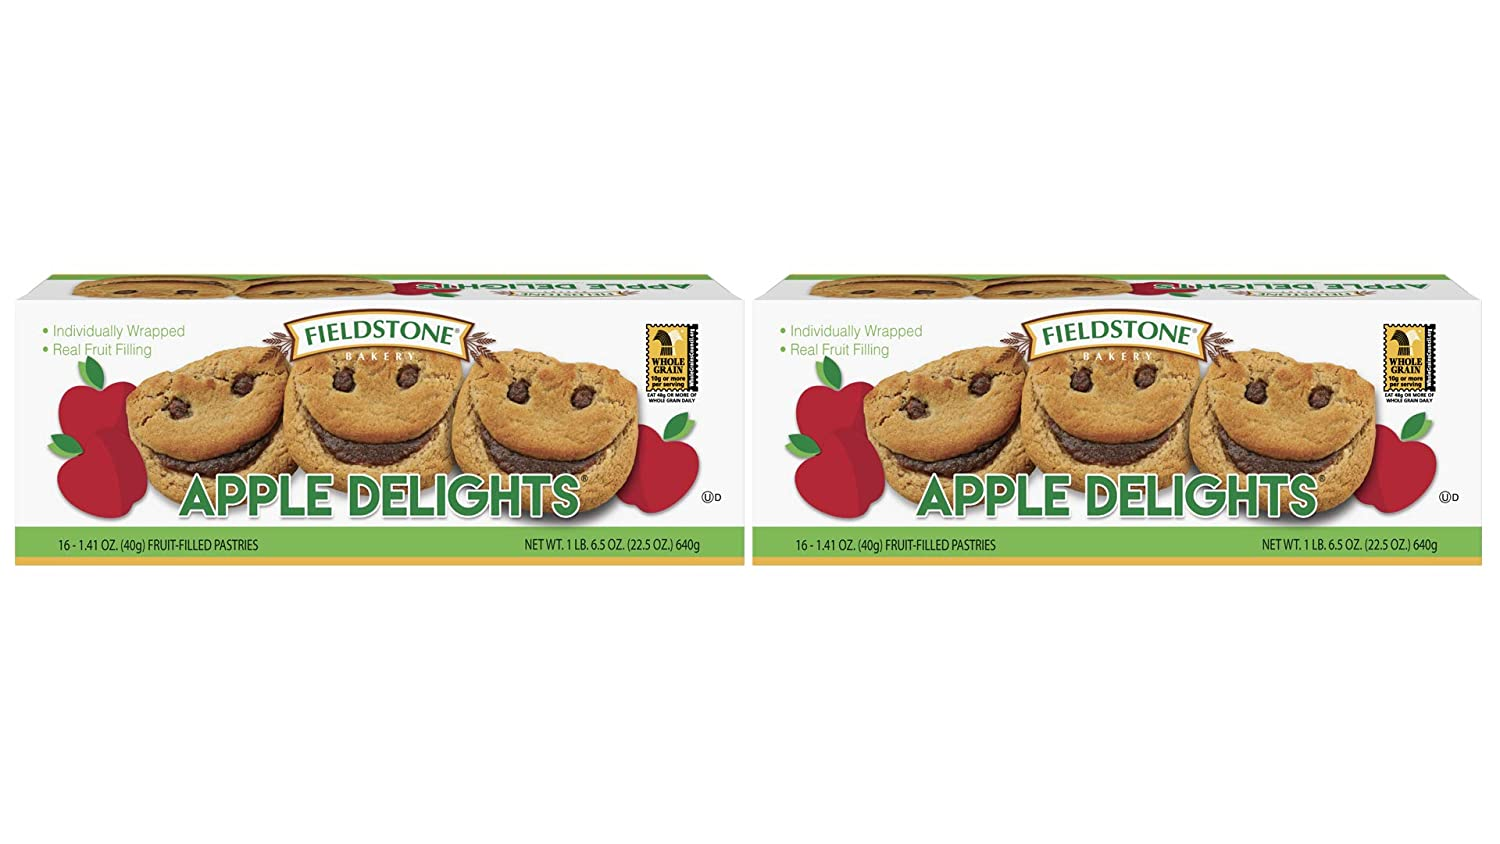 Fieldstone Bakery Whole Grain Apple Delights with Real Fruit Filling, 2 Boxes, 32 Individually Wraped Pastries